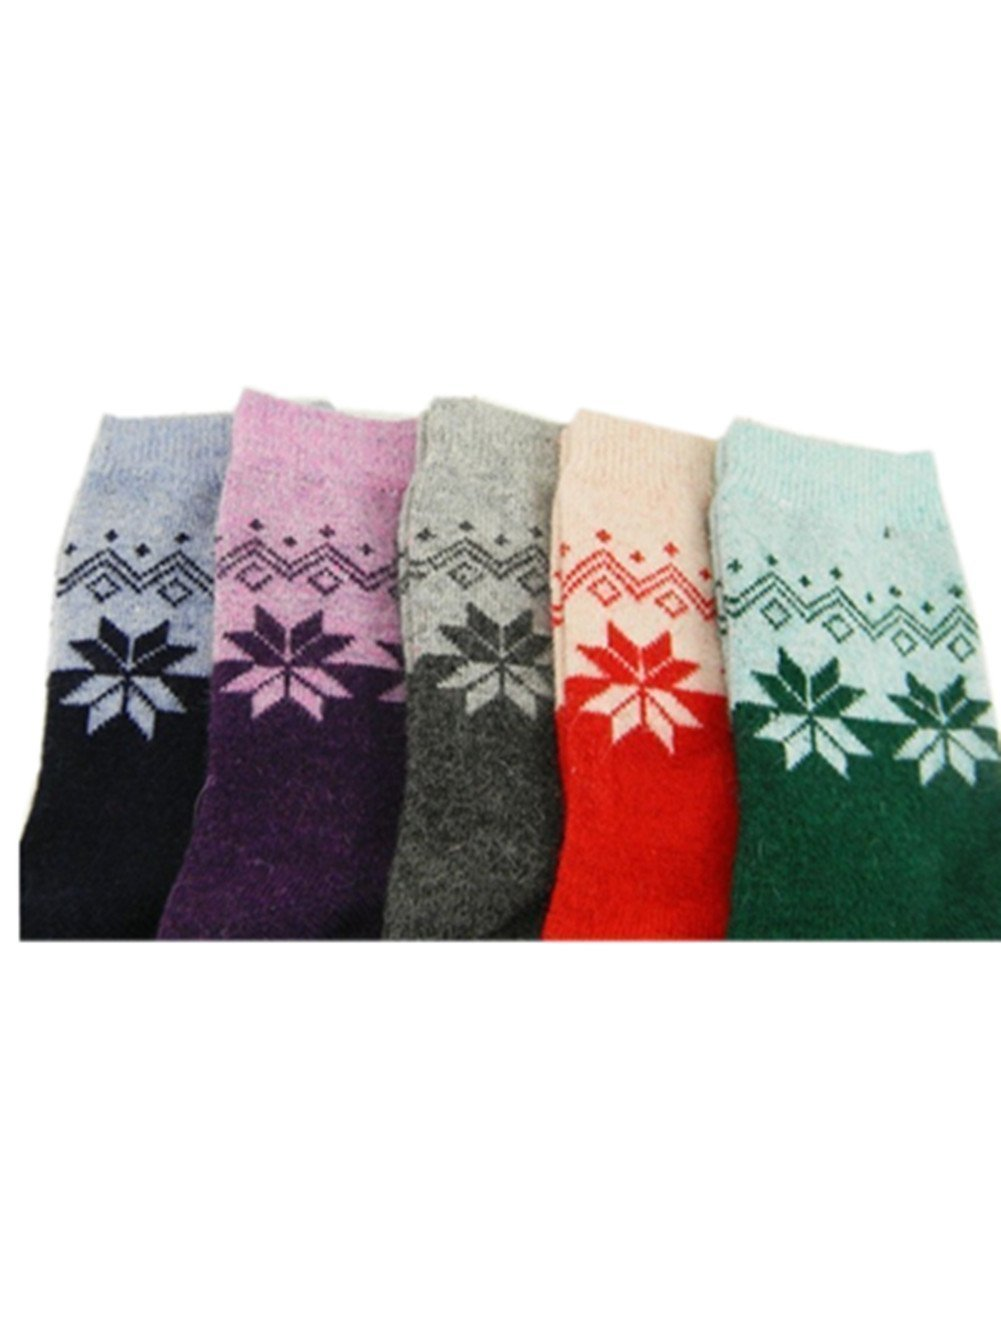 da57715f33 Uzzo™2014 New Unisex Extremes Cold Weather Sock Essential Cashmere Rhombus  Flower Thick Snowflake Maple Leaf Funds Cashmere Rabbit Hair Media Corta  Socks ...